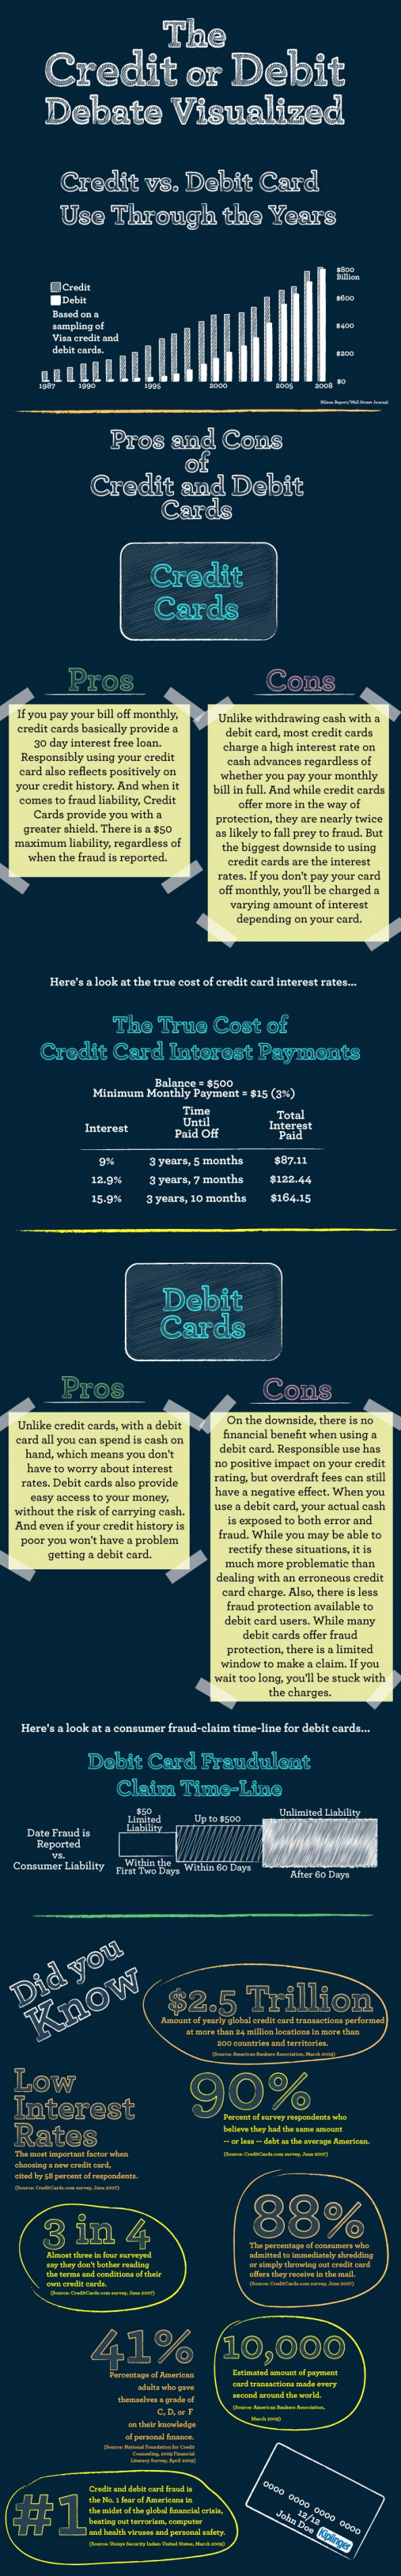 Debit Card Vs Credit Card Infographic